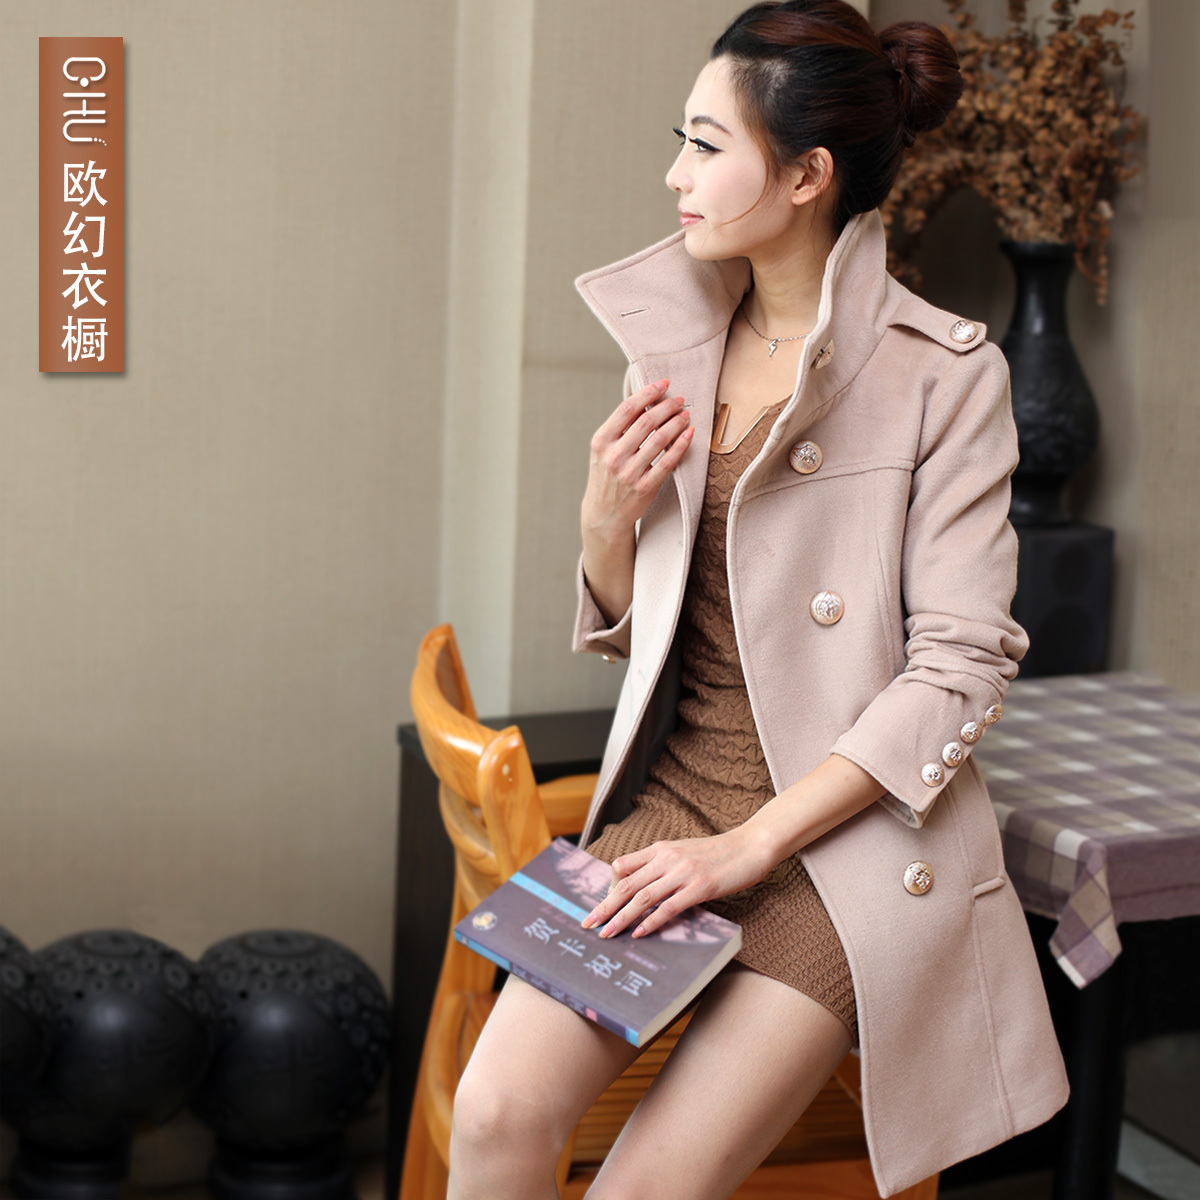 Europe 2013 spring new Korean fashion Magic Wardrobe Barret in long woolen cloth coats slim jacket